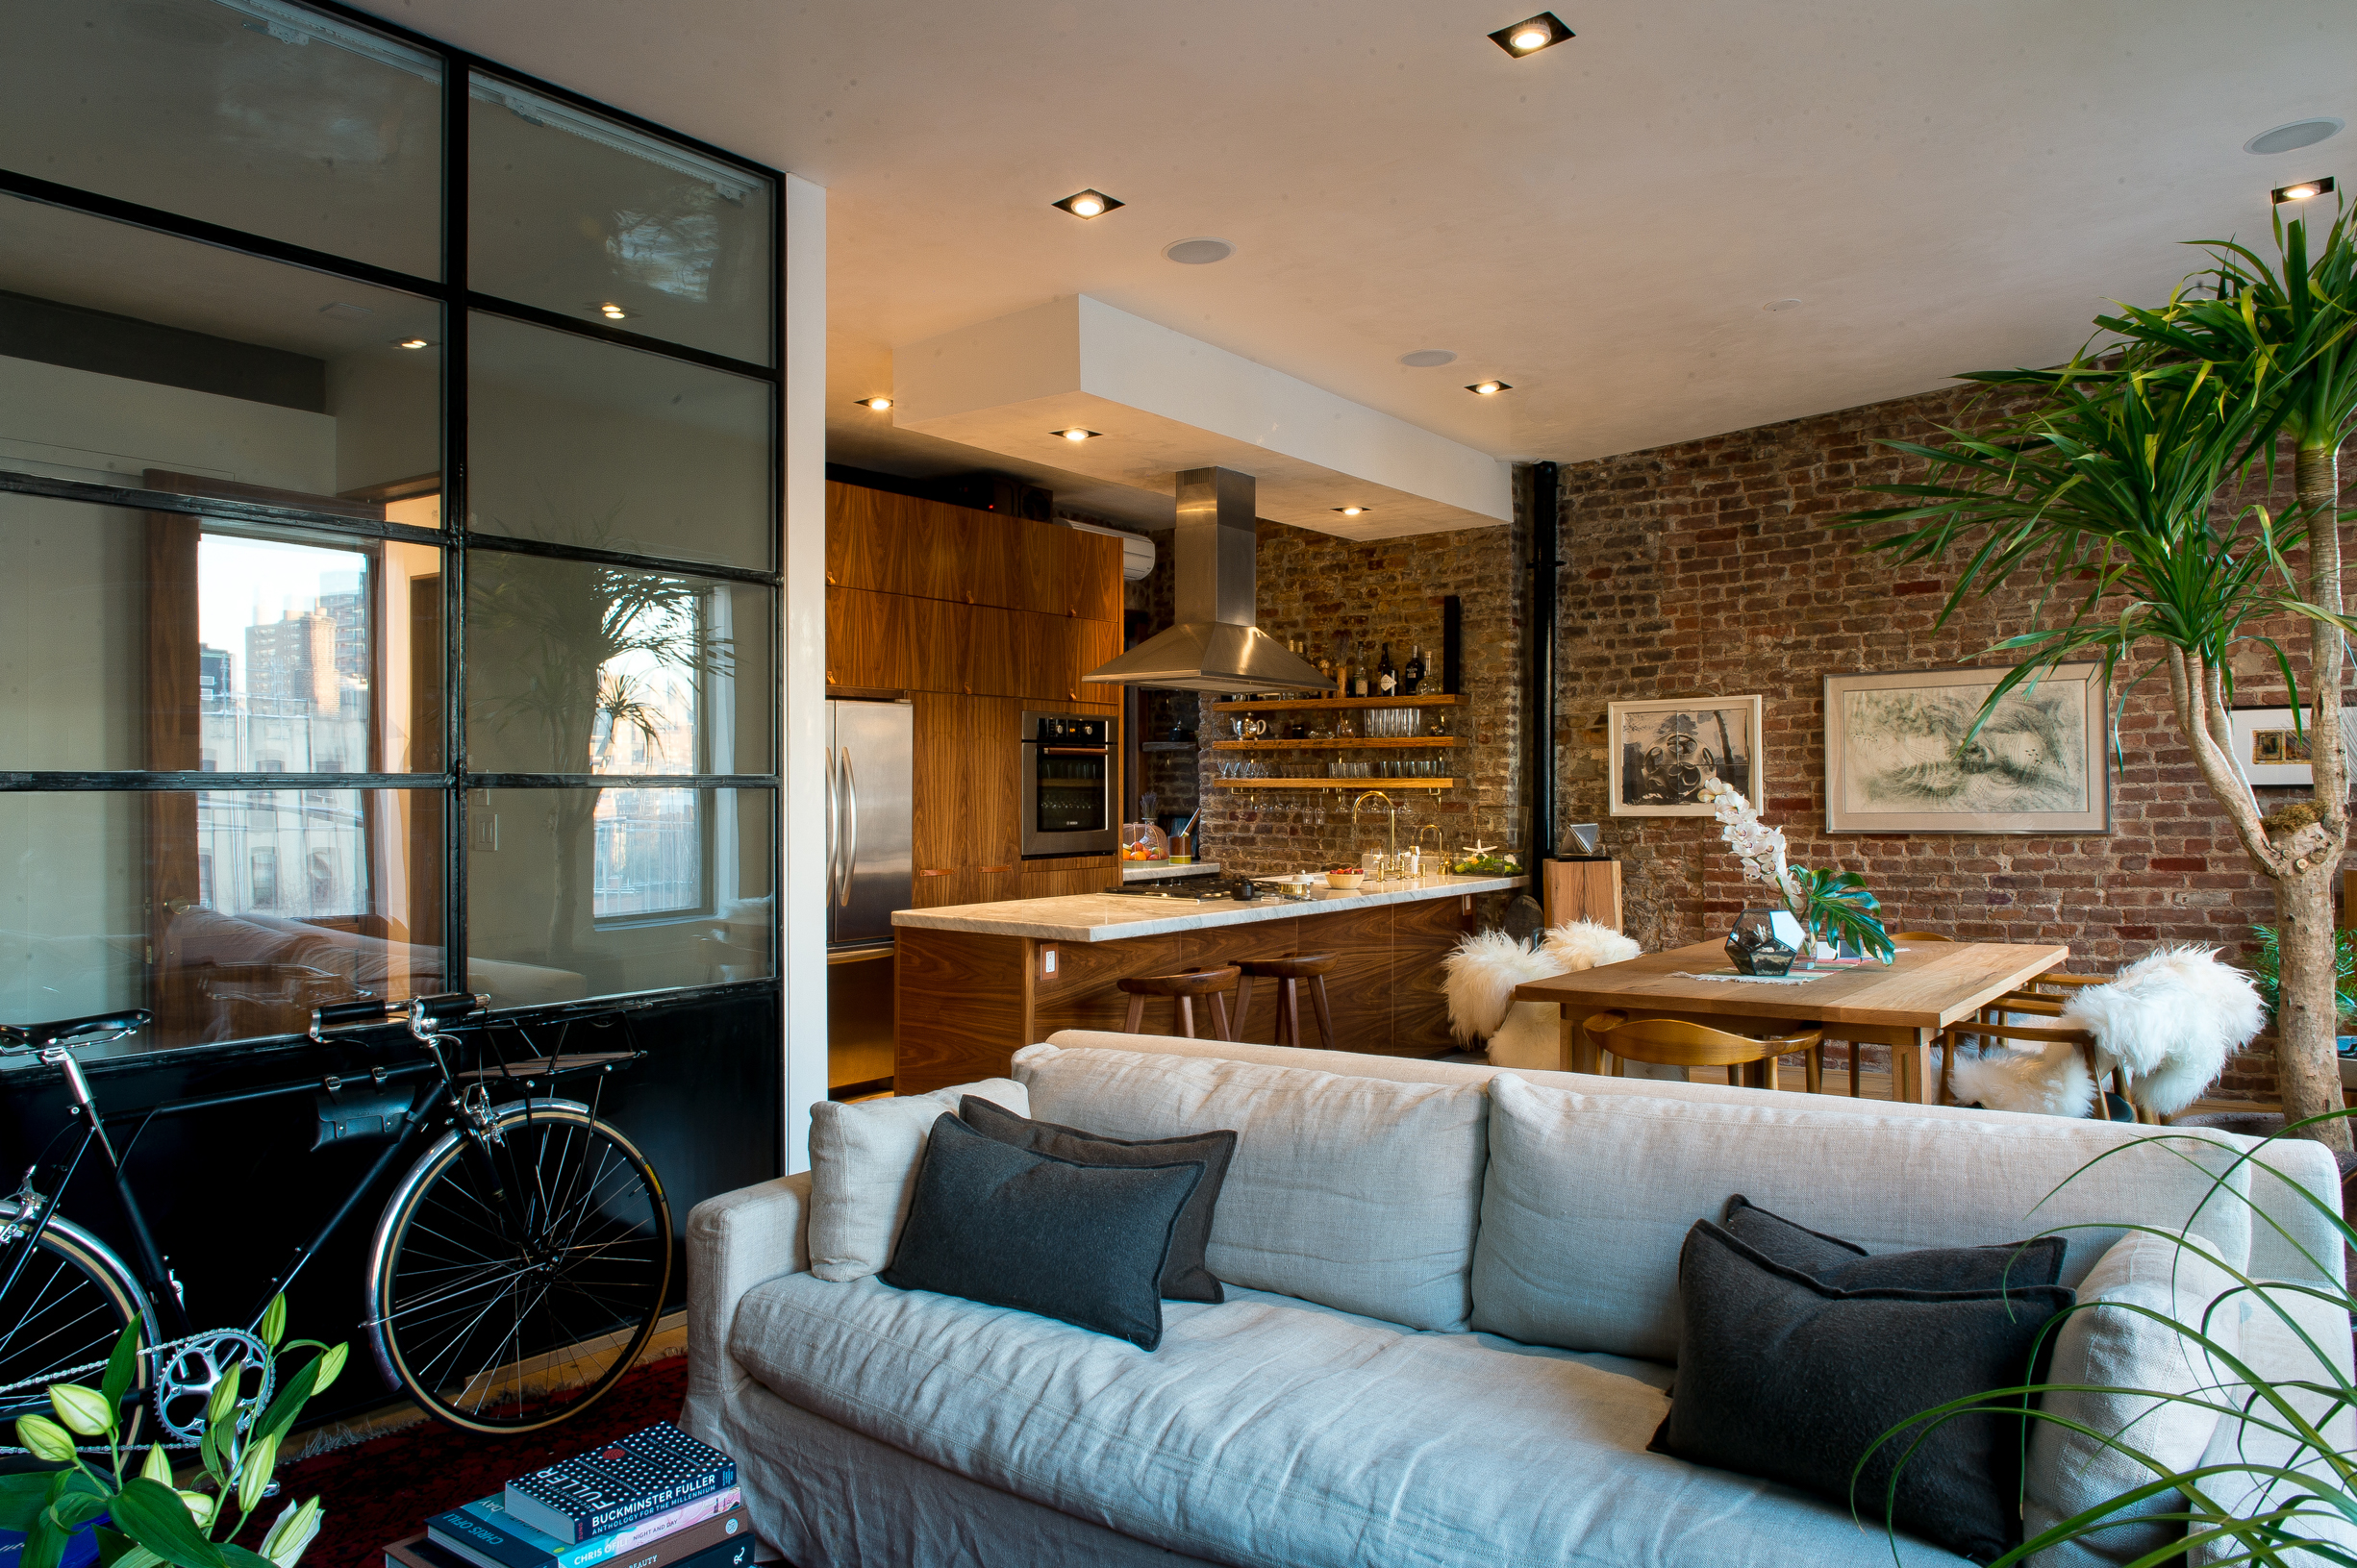 Modern New York loft apartment with couch, open kitchen, open shelving, American walnut cabinetry